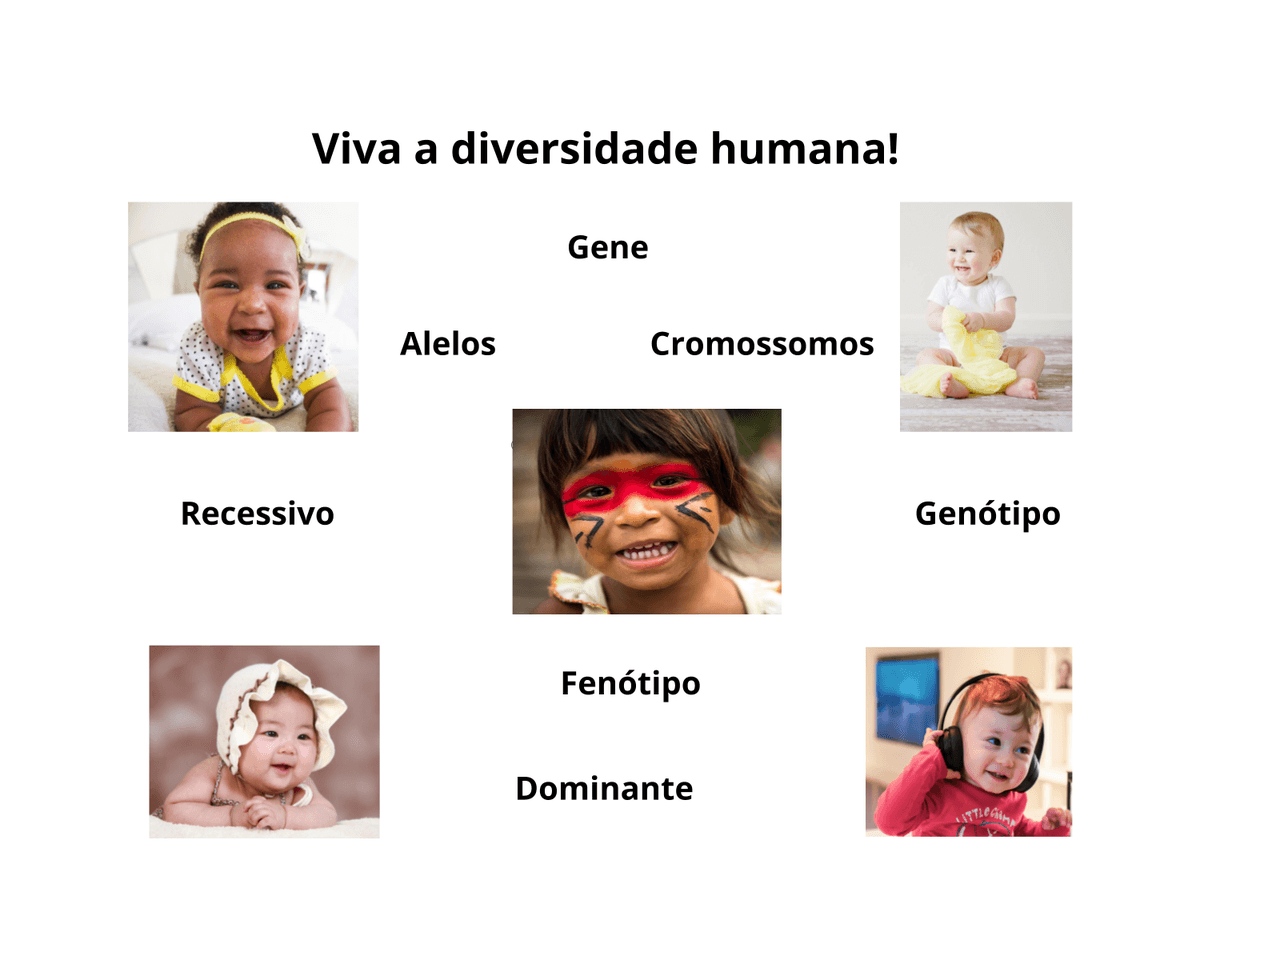 Os genes e as características hereditárias